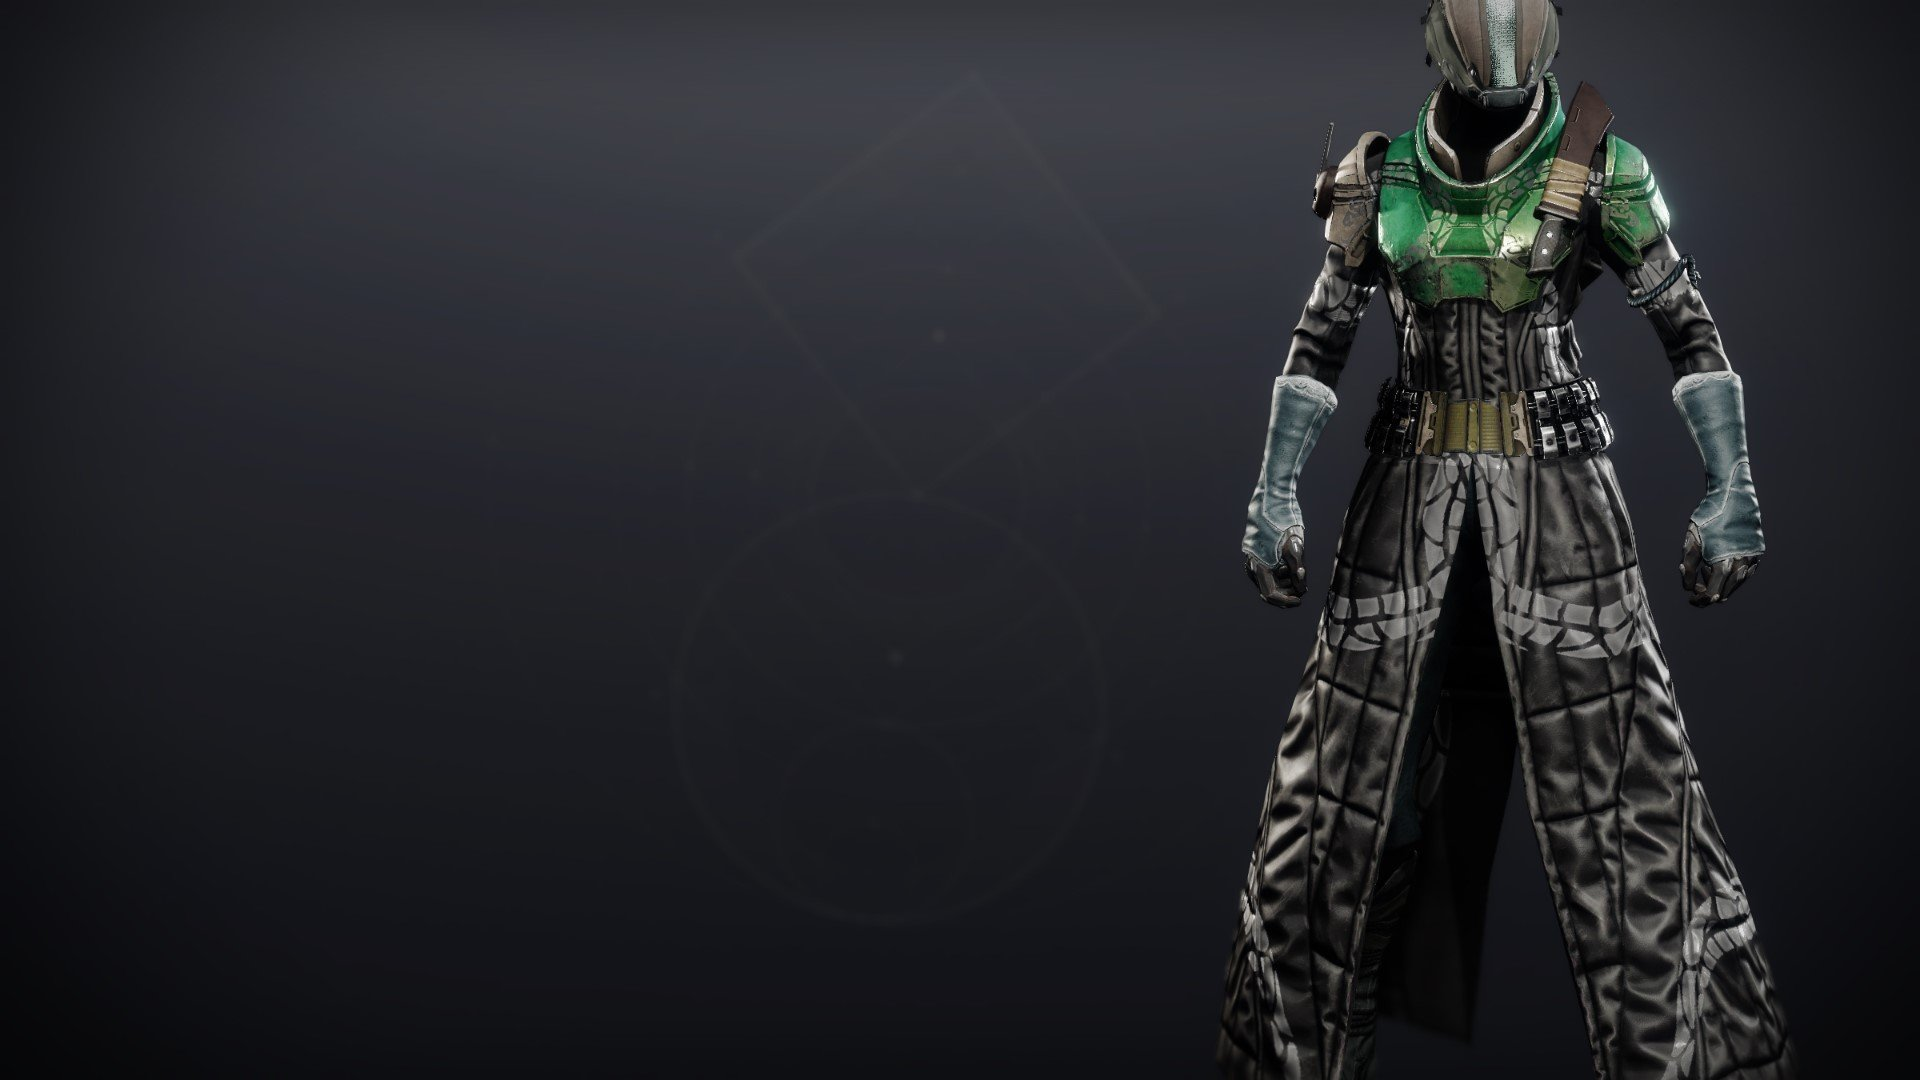 An in-game render of the Calamity Rig Robes.